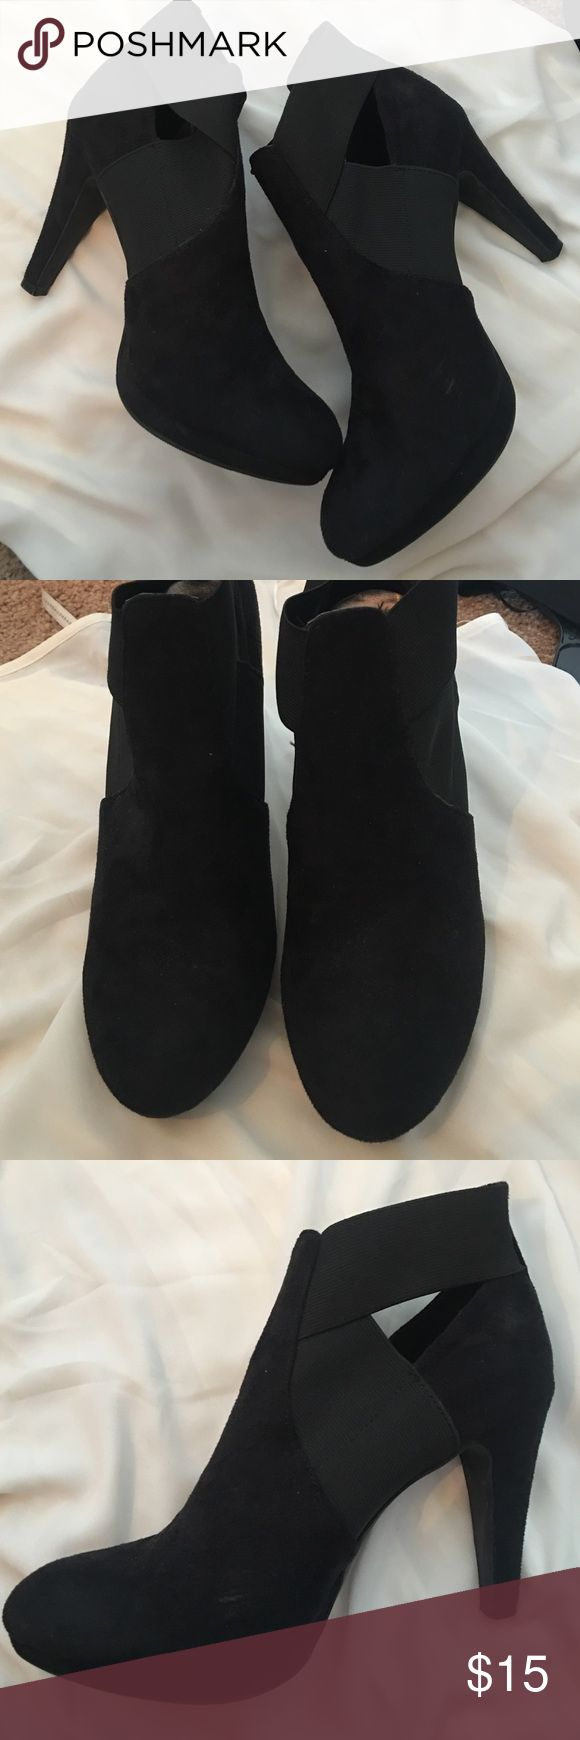 """Madden girl black suede pumps Madden girl black suede pumps gently used good condition! Super trendy suede black bootie with about a 3"""" heel Madden Girl Shoes Ankle Boots & Booties"""